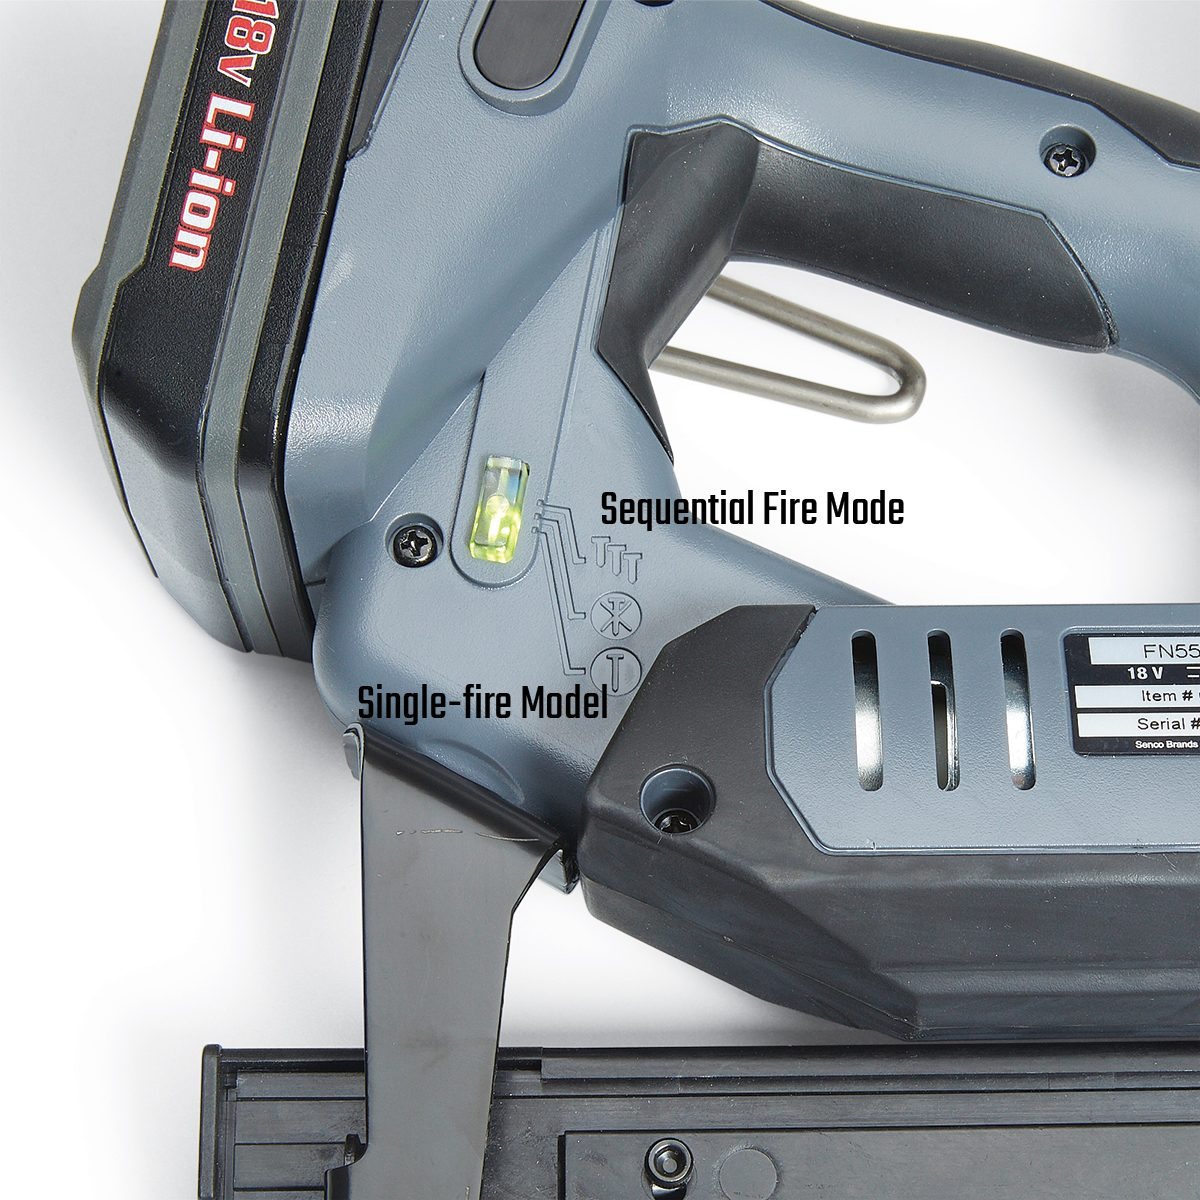 Brad Nailer with Sequential Firing | Construction Pro Tips